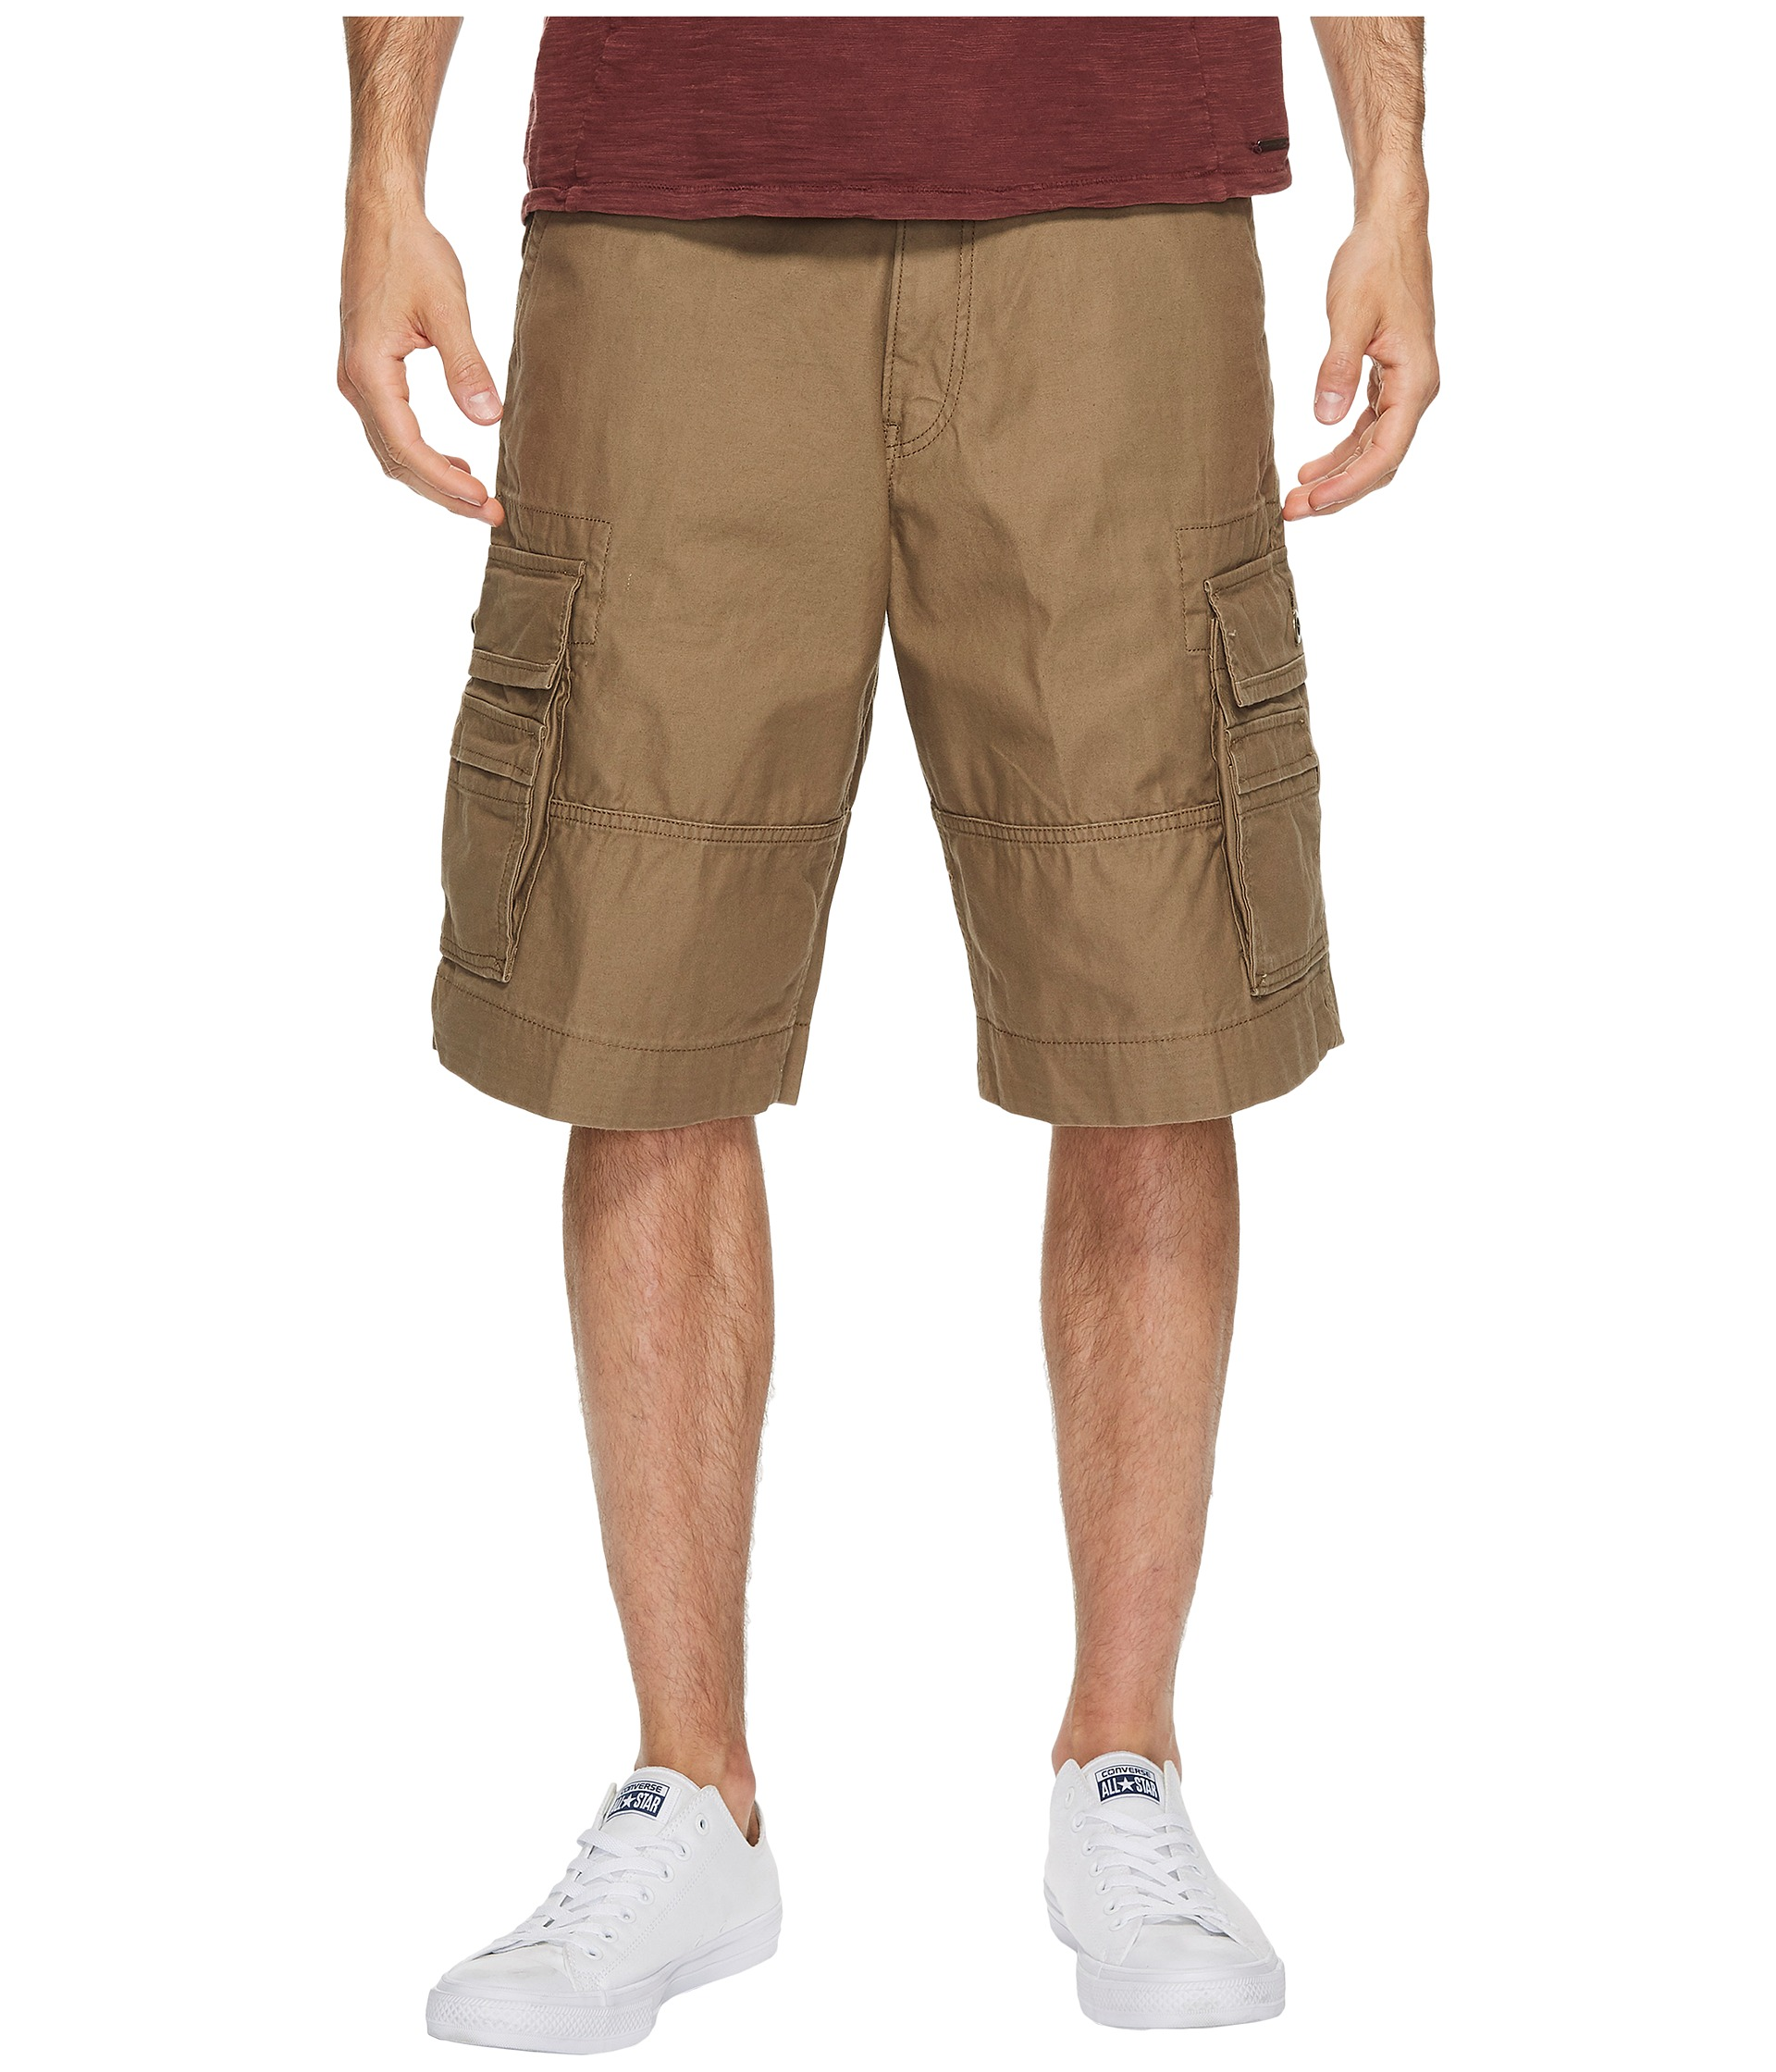 cargo shorts for men leviu0027s® mens squad cargo short FHTFPOW